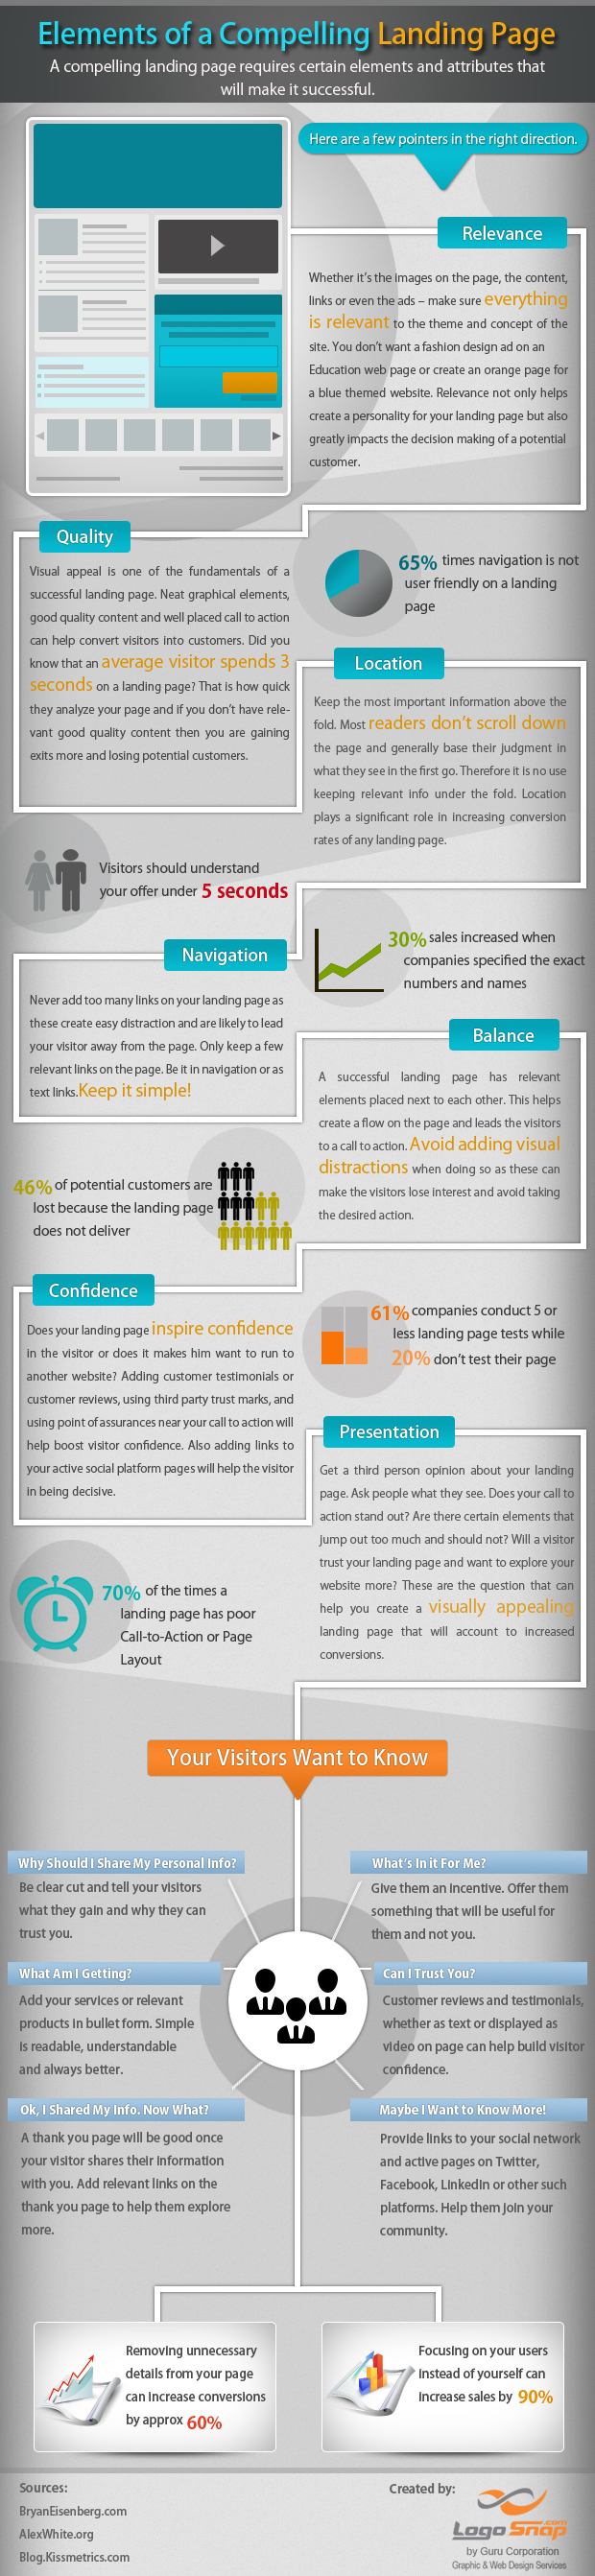 strengths and weaknesses of a landing page elements of a good landing page